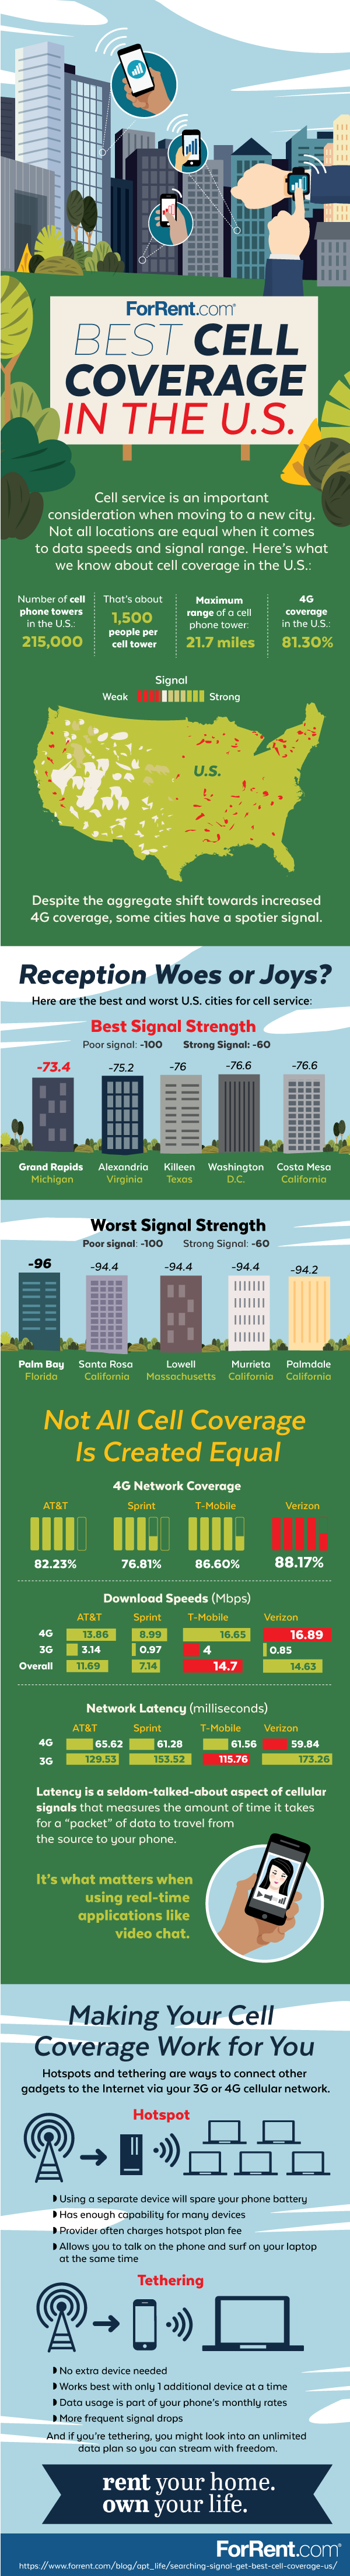 Best Cell Coverage in the U.S. #infographic